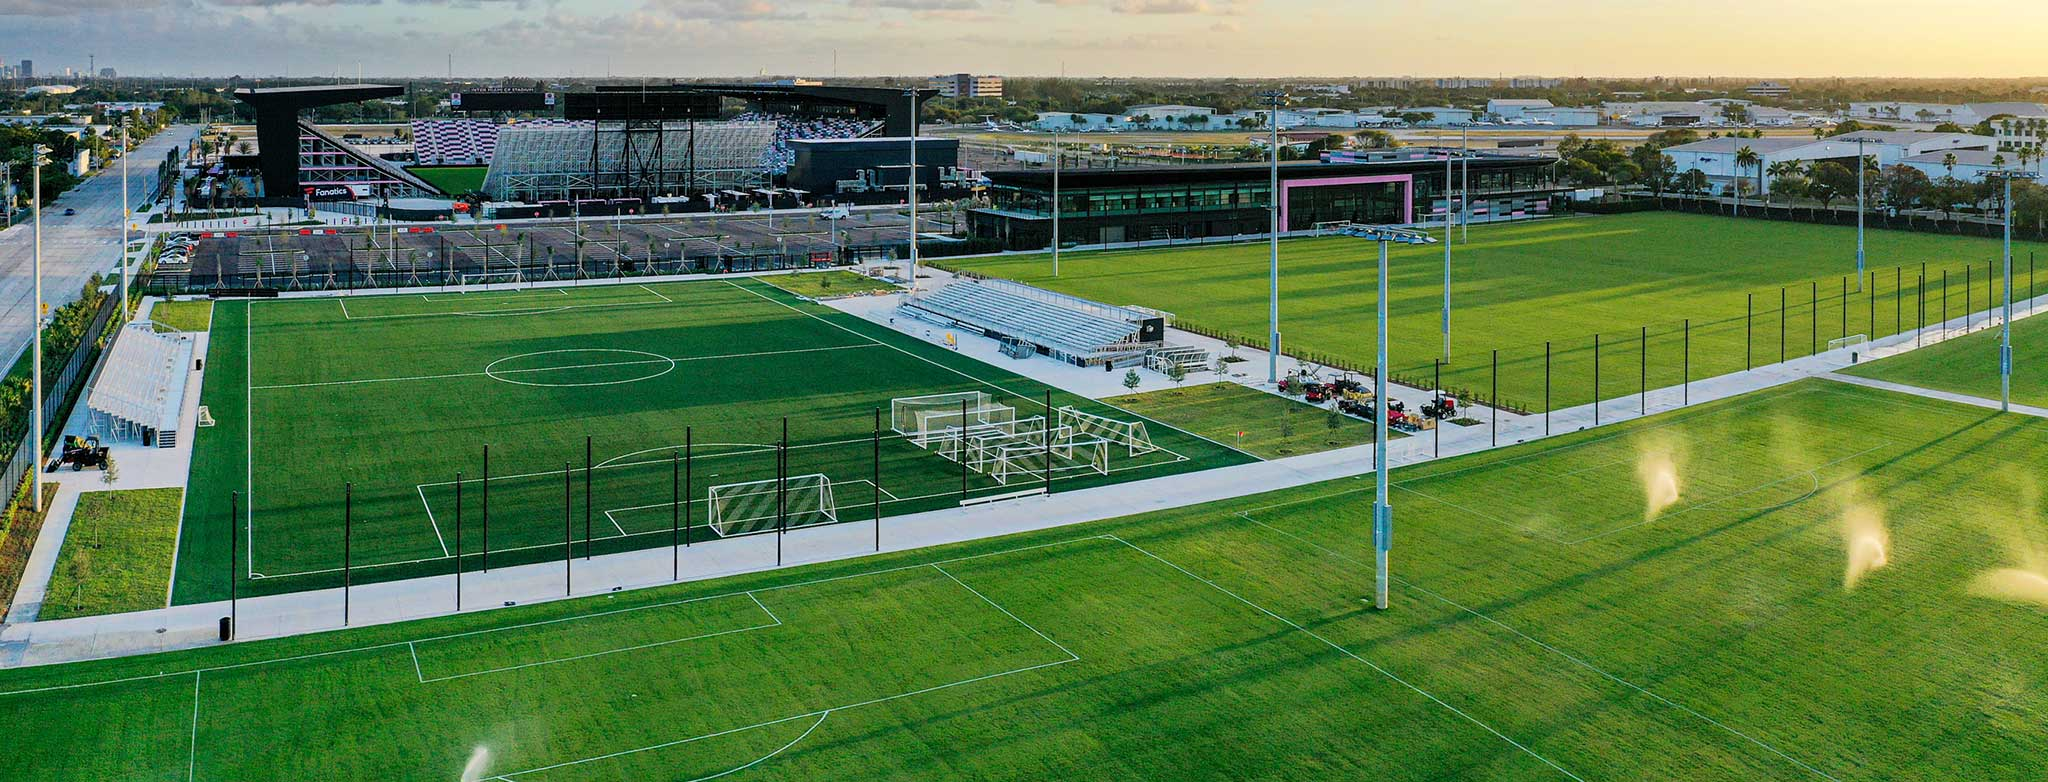 Inter Miami CF Lockhart Stadium and Training Facility